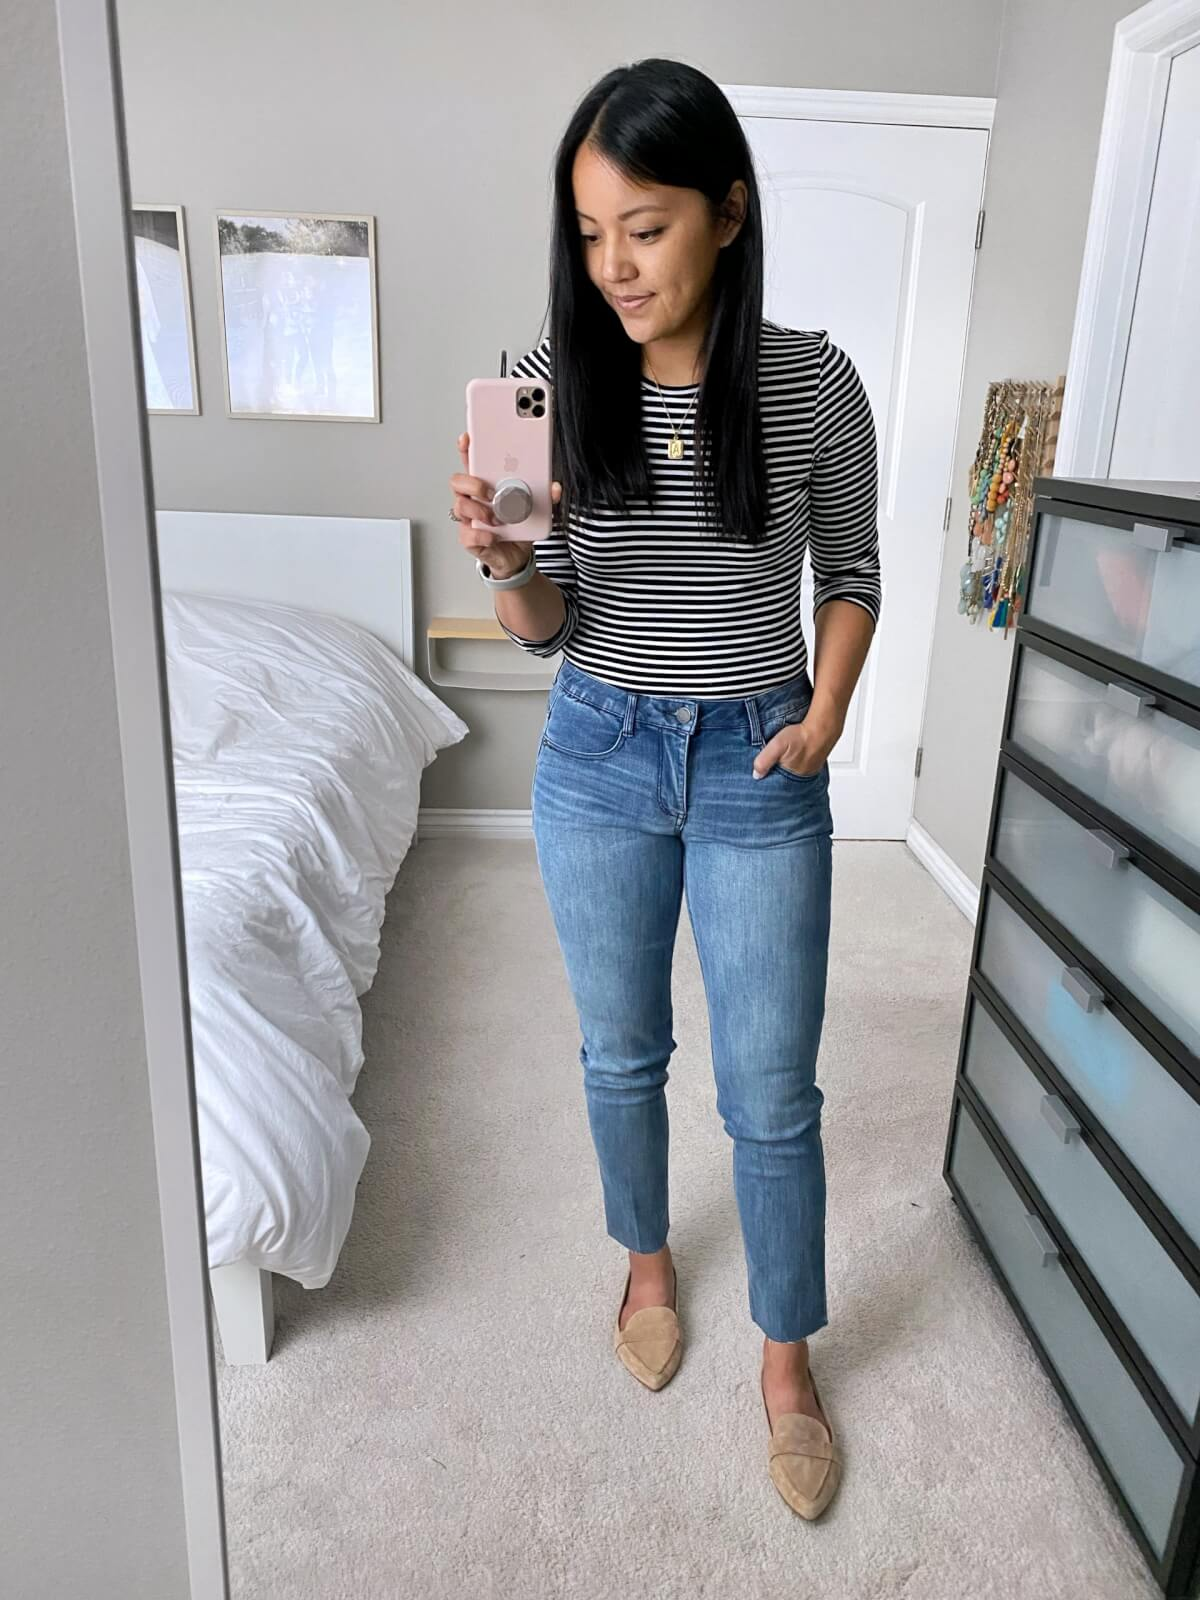 NSale Nicer Casual Outfit: Halogen modal black and white striped tee + Wit & Wisdom light denim straight leg jeans + gold initial pendant necklace + nude suede loafers